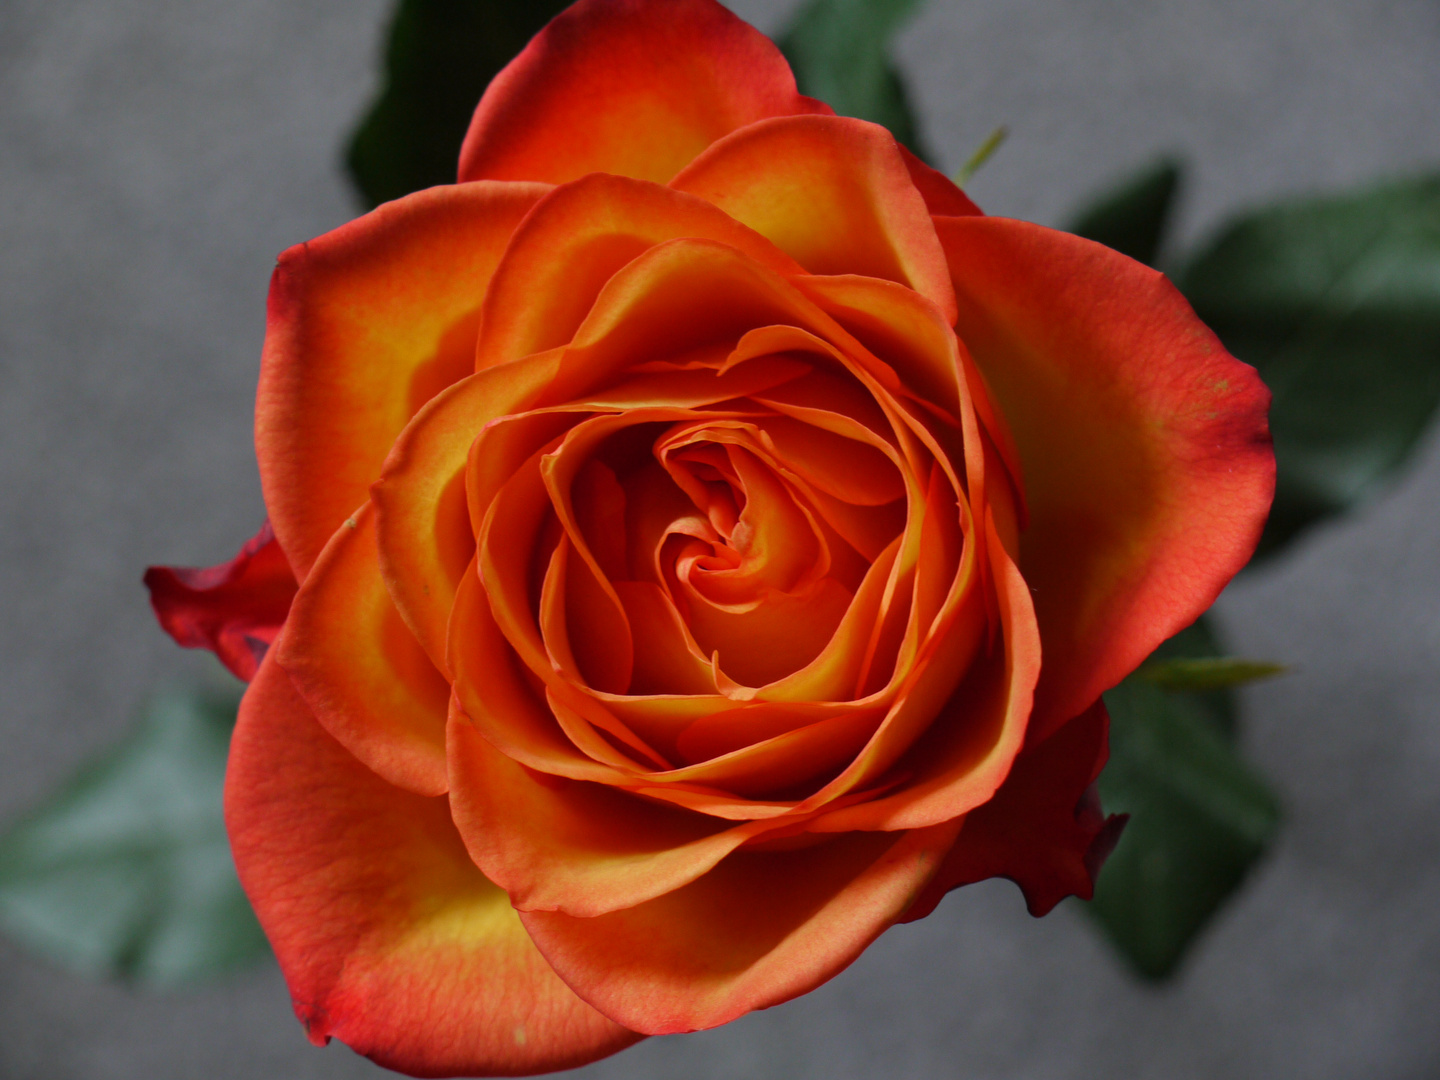 a rose is a rose is a rose ...